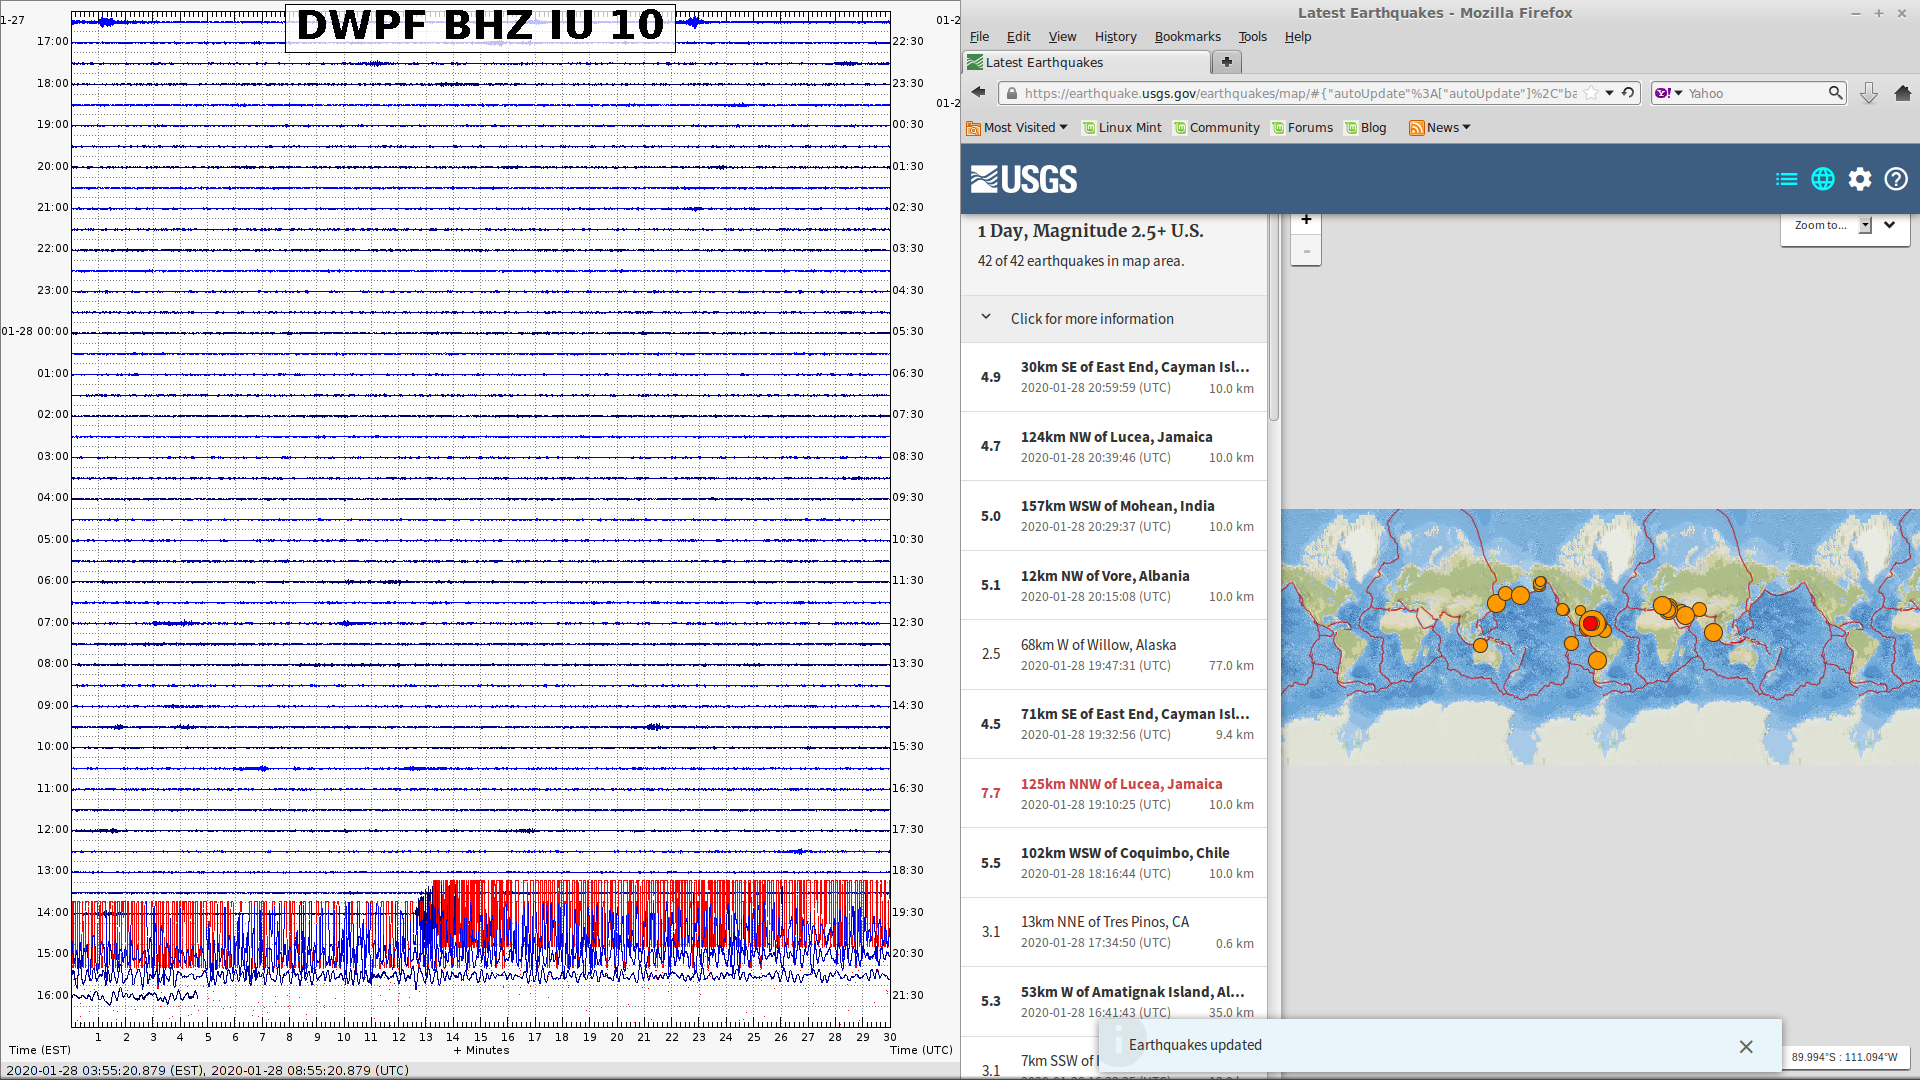 Seismic display at Carnegie Science Broad Branch campus the day of the earthquake